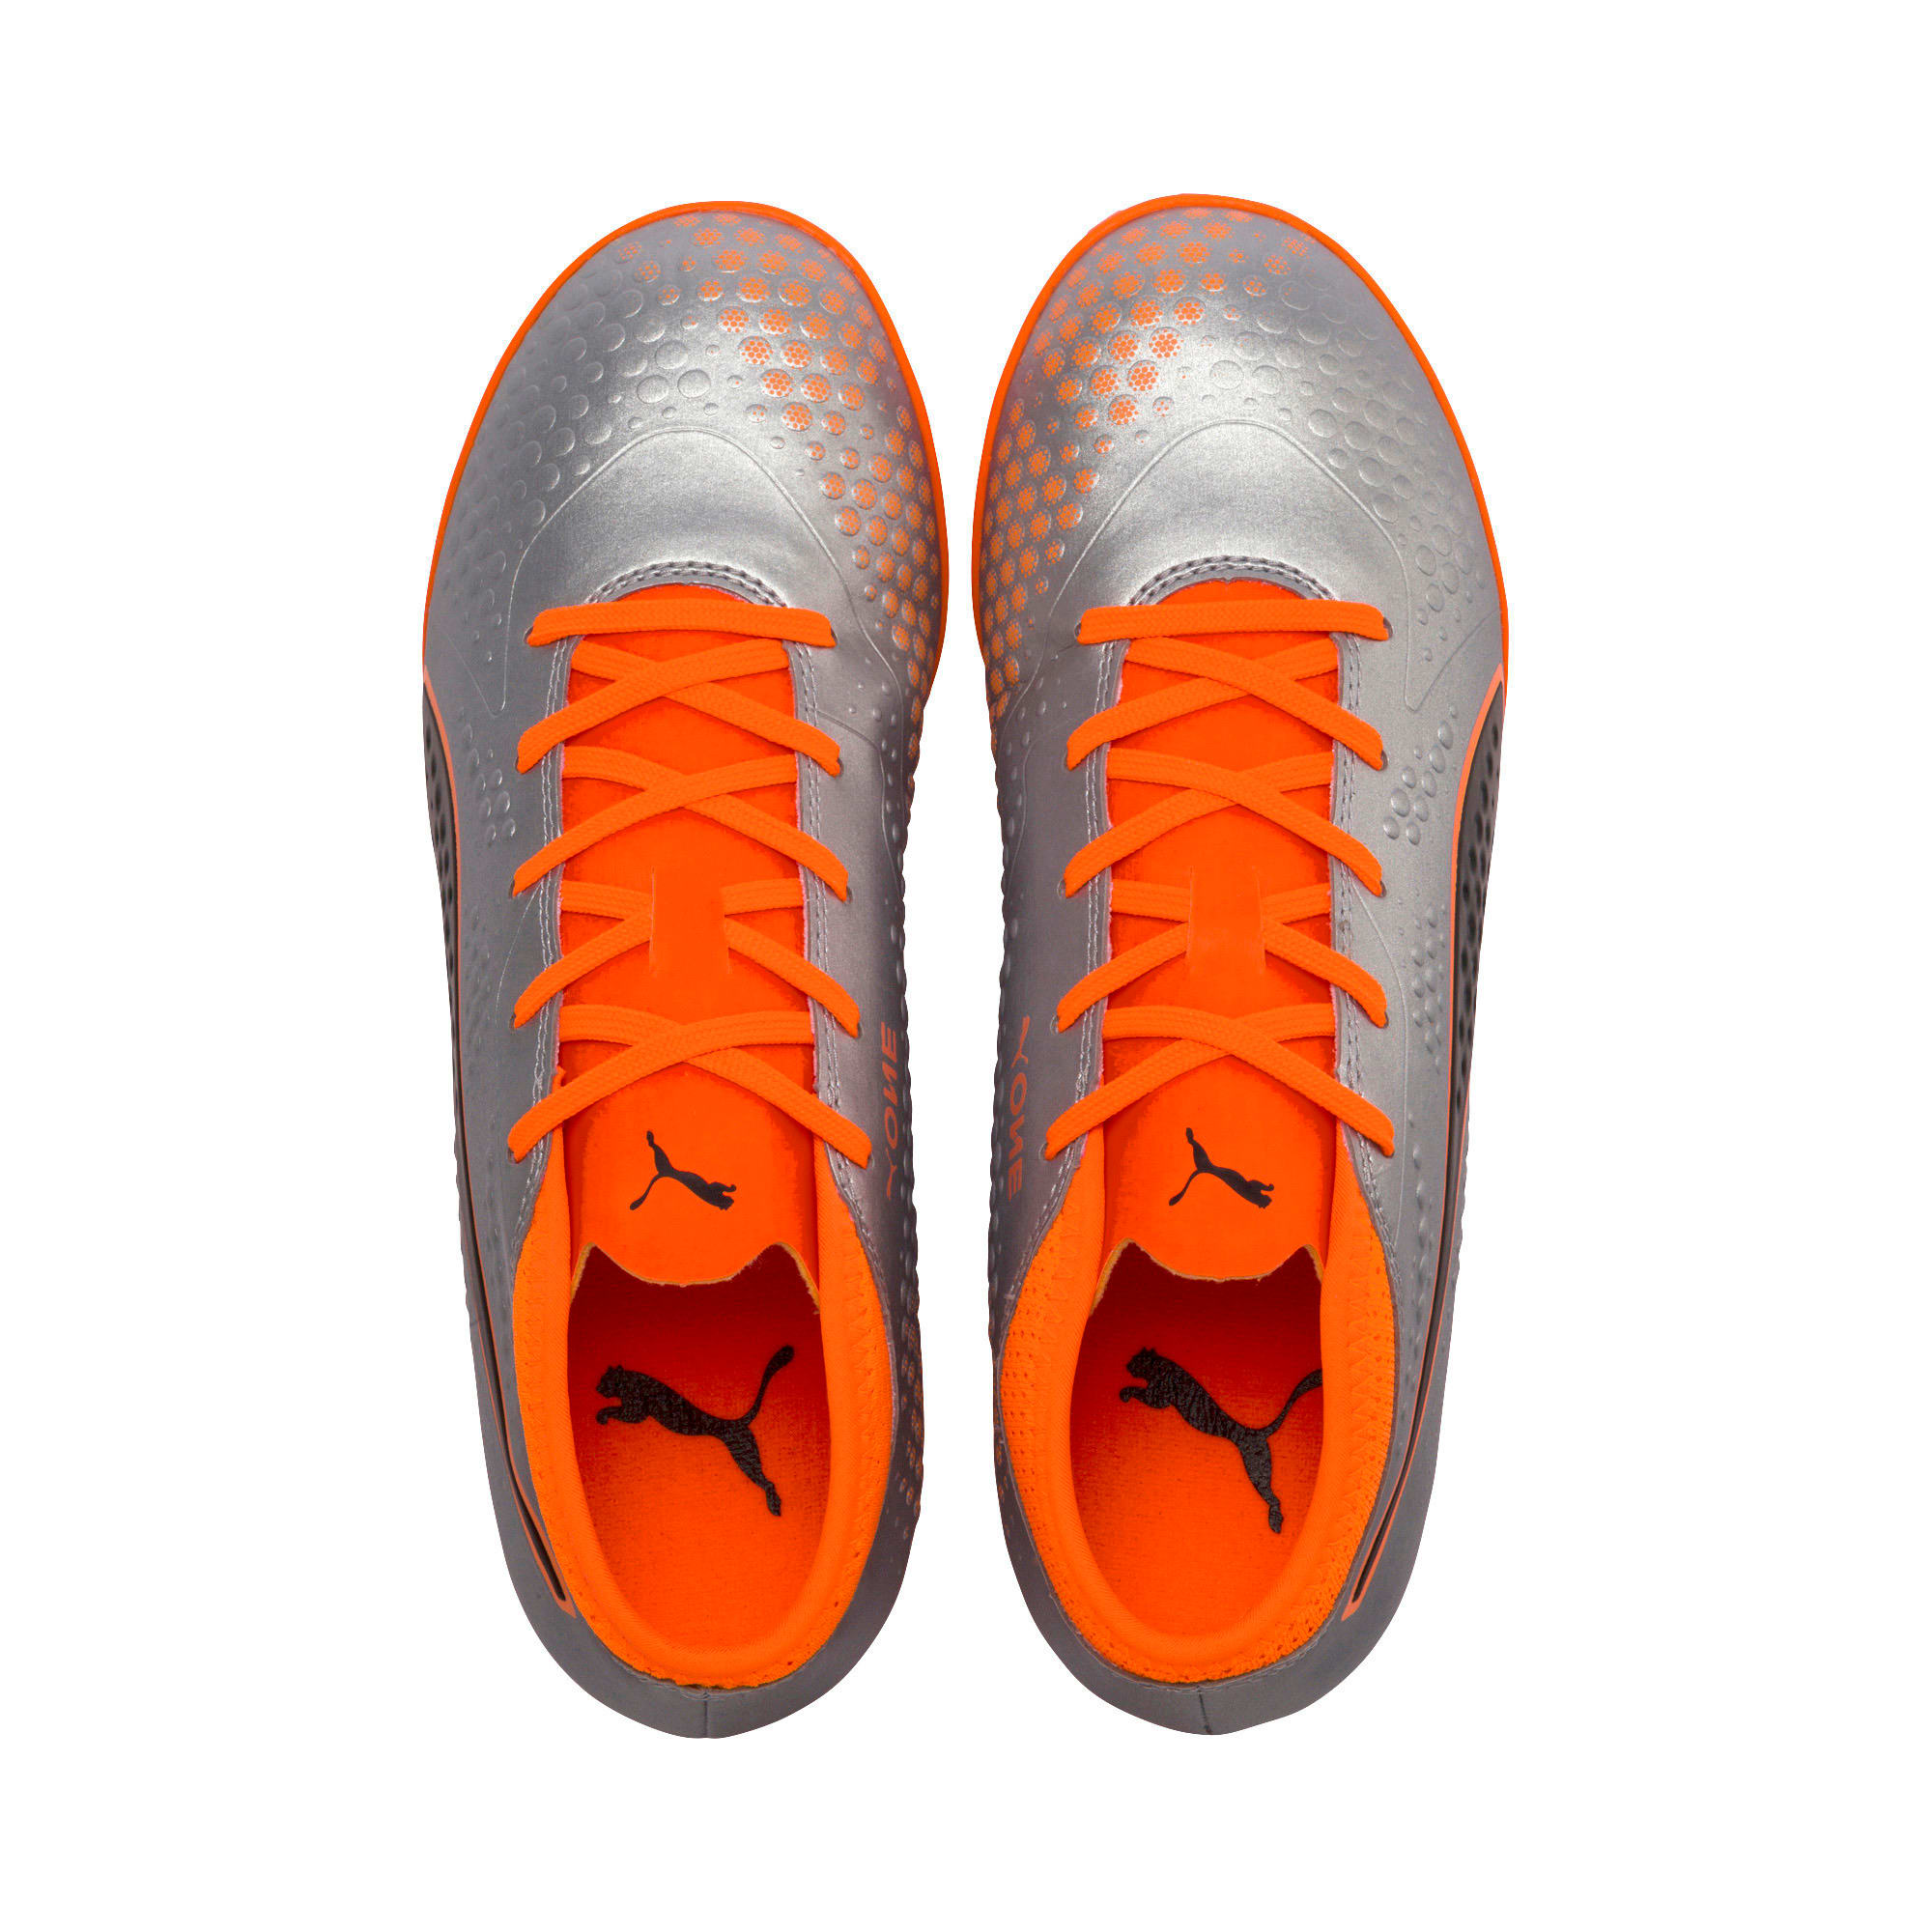 Thumbnail 6 of PUMA ONE 4 Synthetic IT Kid's Football Shoes, Silver-Orange-Black, medium-IND